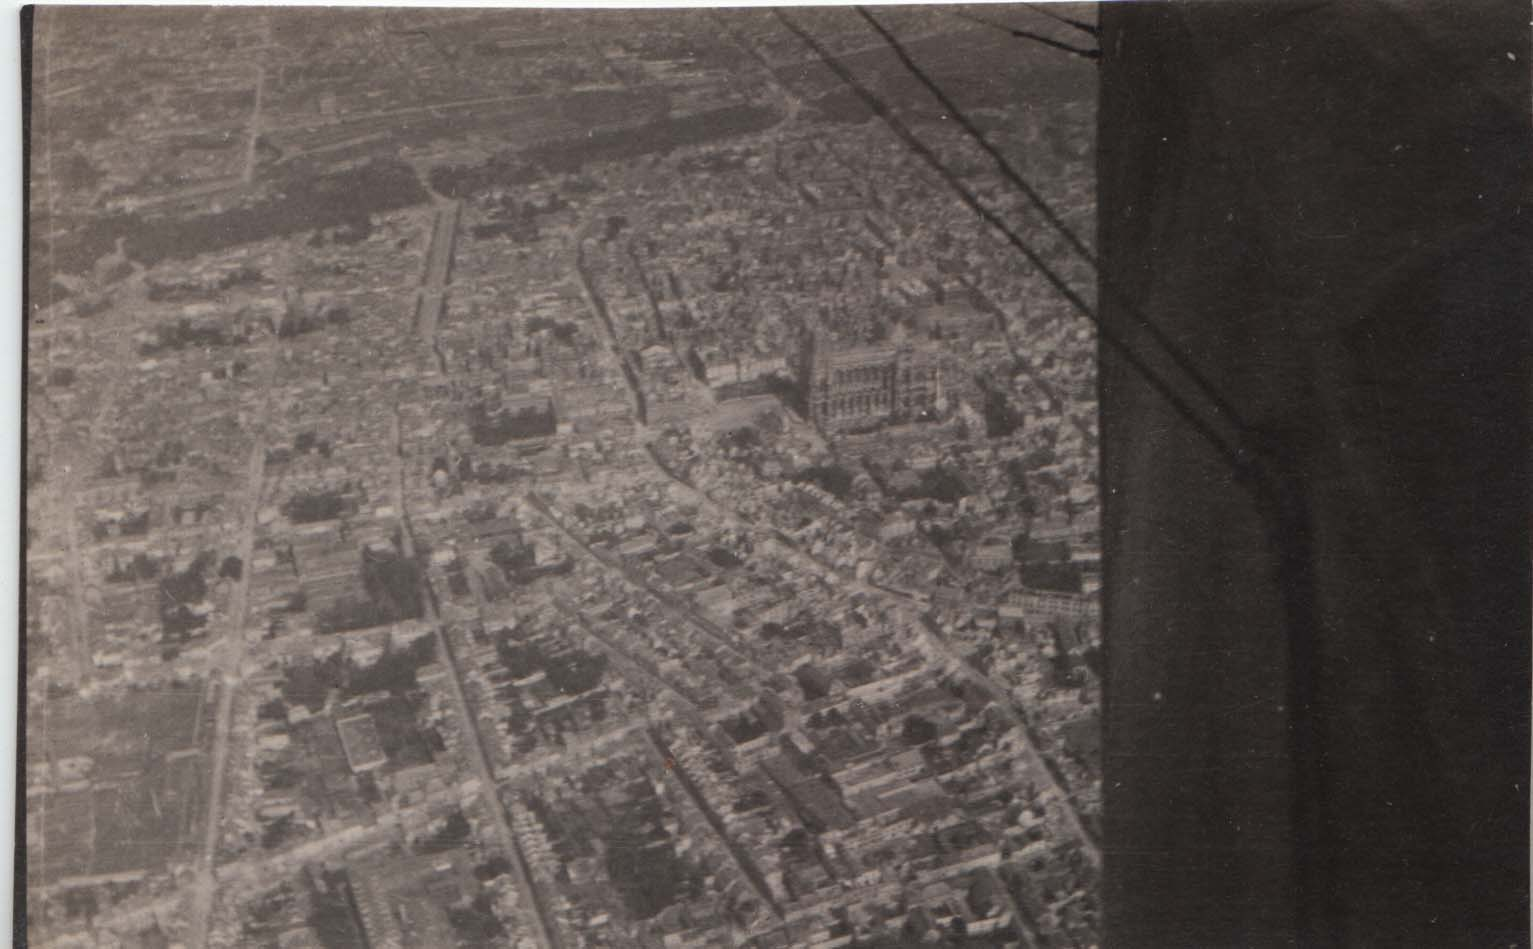 0424 Overview of the city from plane